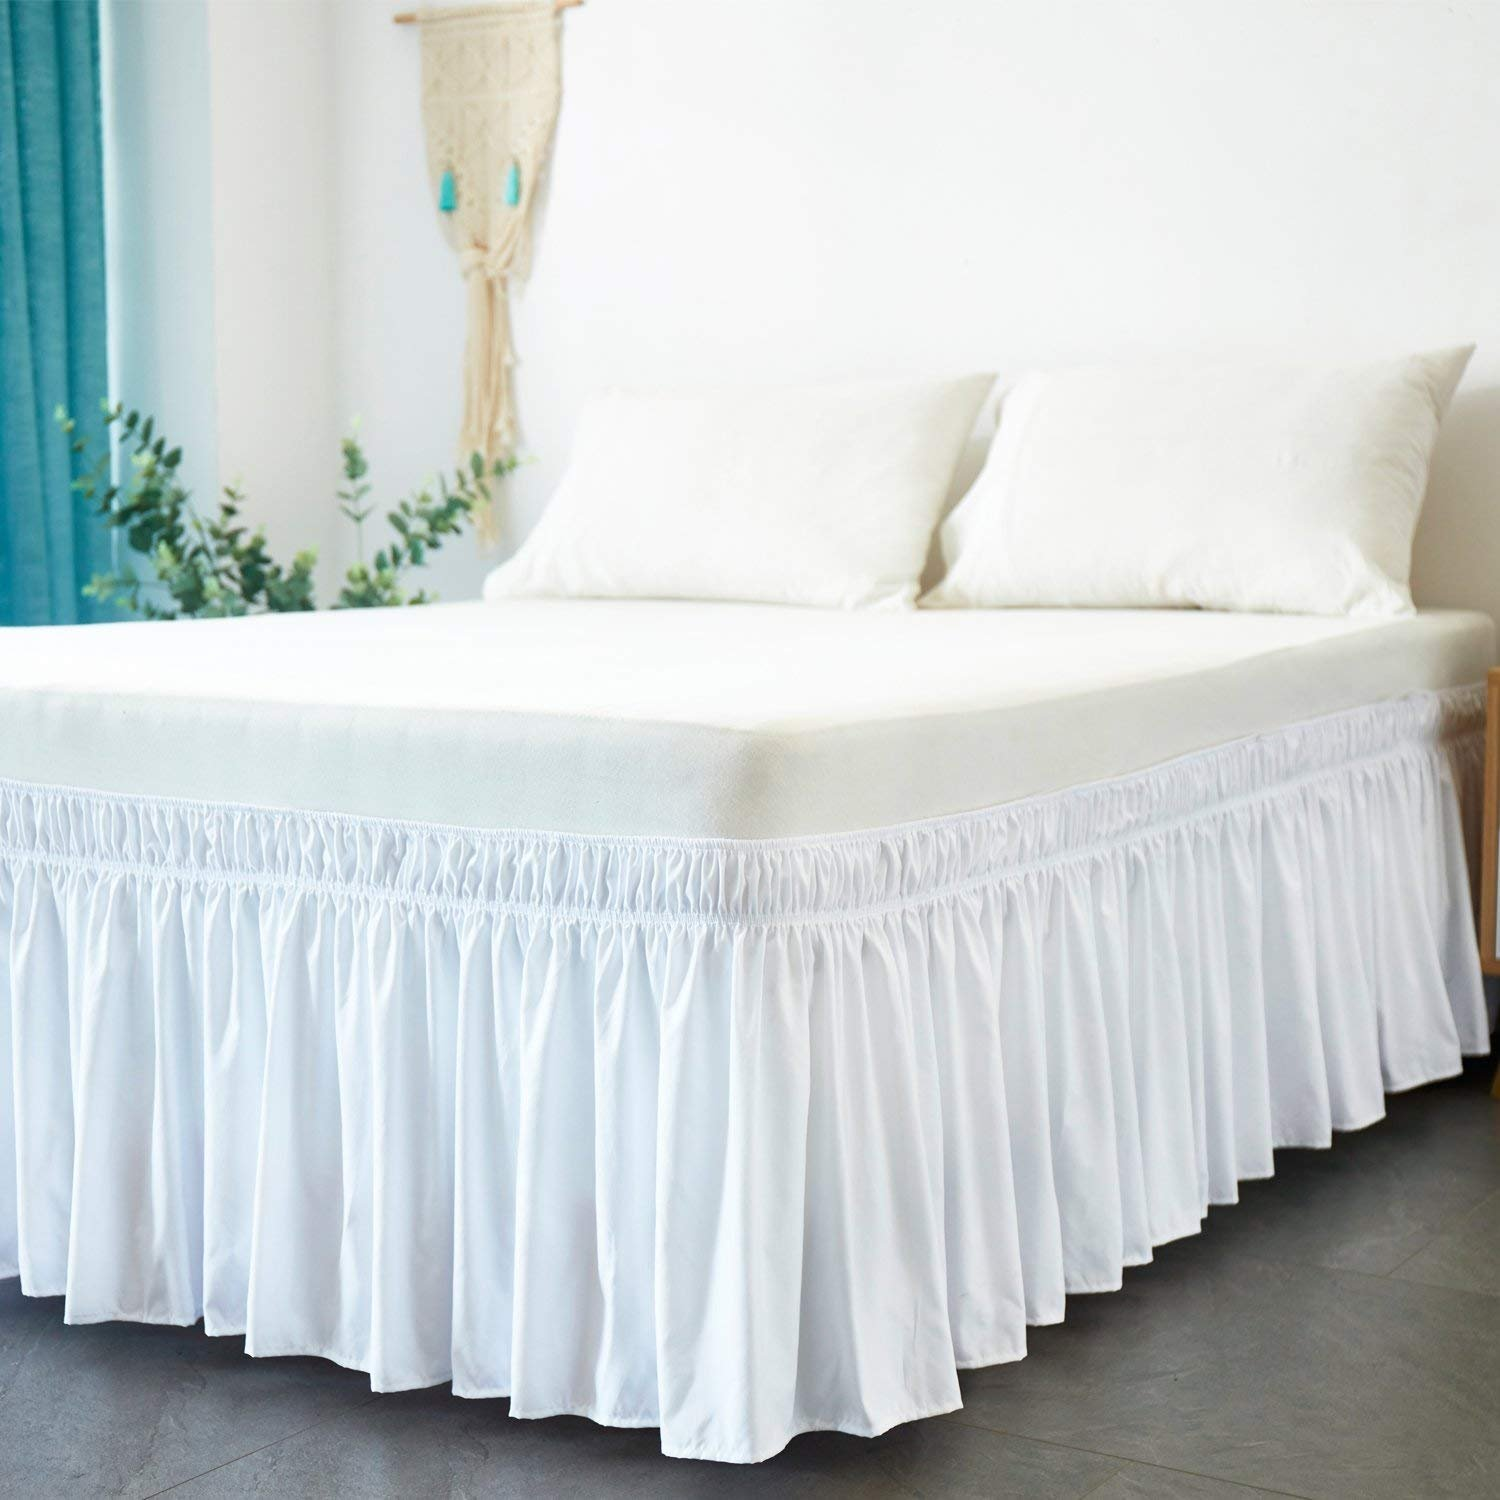 (Full/Queen, White) - Cozylife Three Fabric Sides Wrap Around Elastic Solid Bed Skirt, Easy On/Easy Off Dust Ruffled Bed Skirts 41cm Tailored Drop (White,Full/Queen) B07F47SWC8